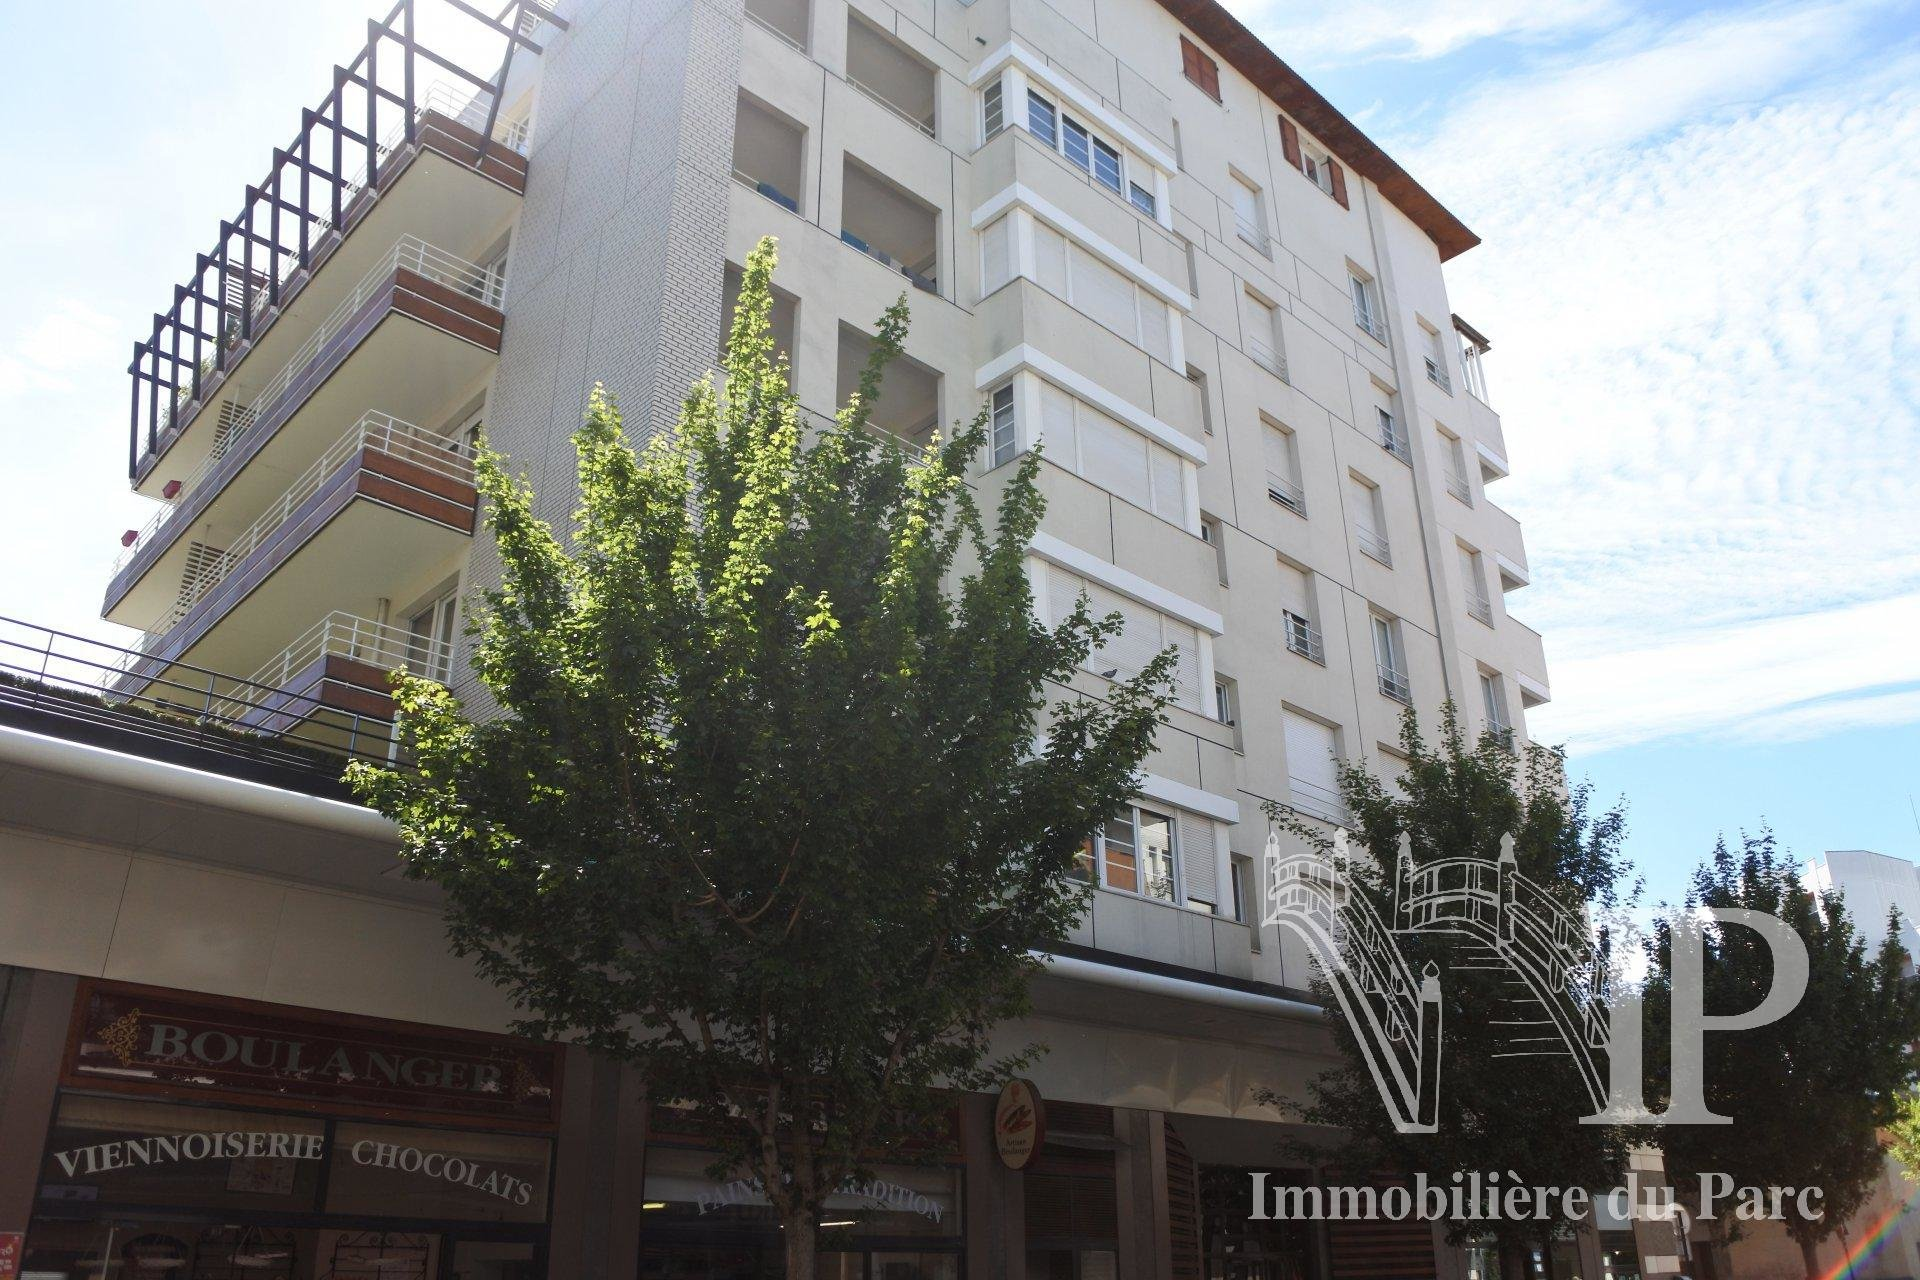 Vente Appartement - Saint-Germain-en-Laye